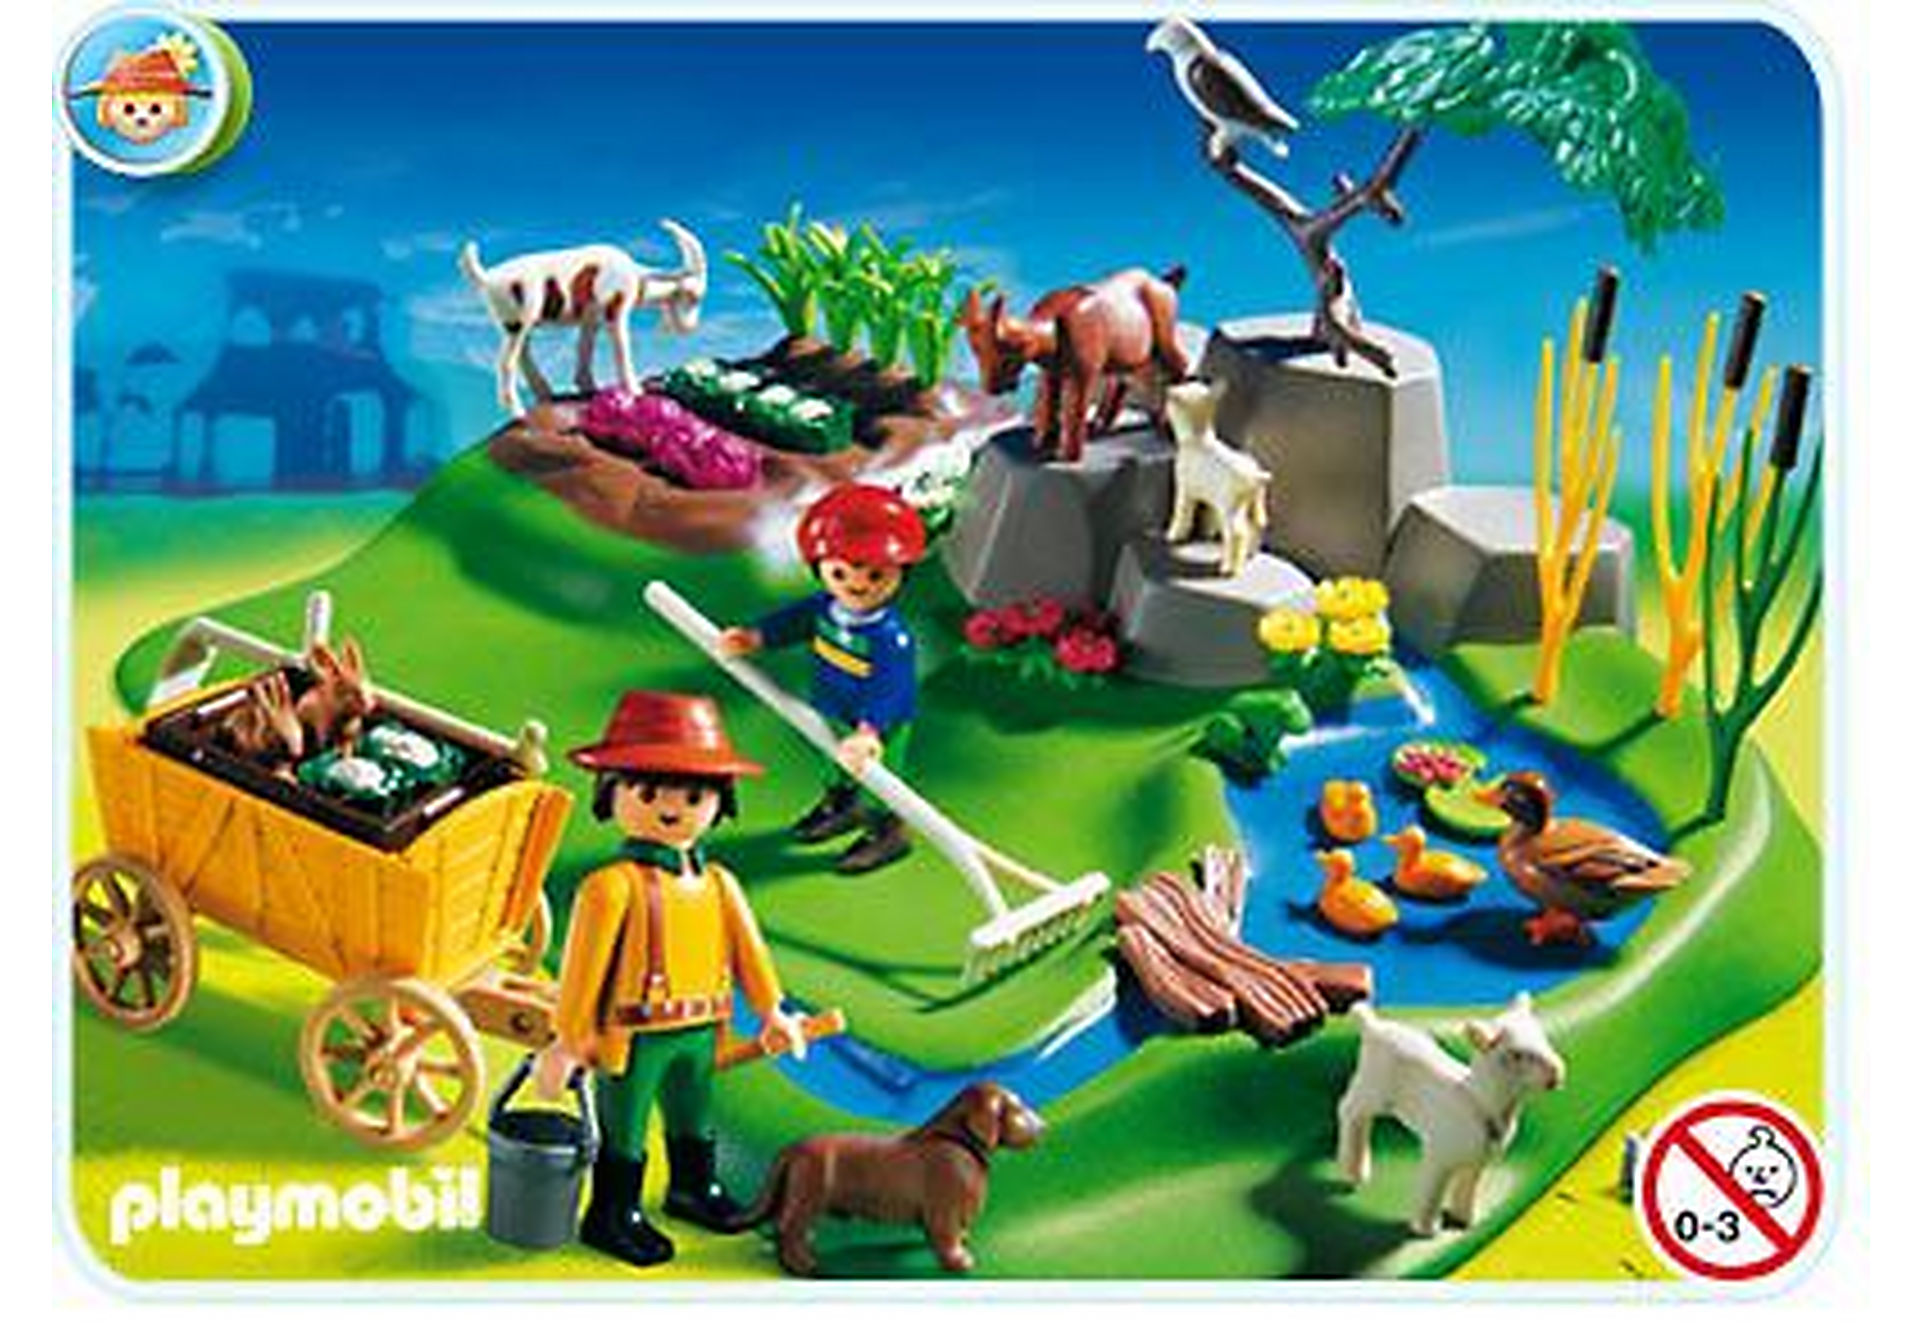 http://media.playmobil.com/i/playmobil/3124-B_product_detail/SuperSet ferme